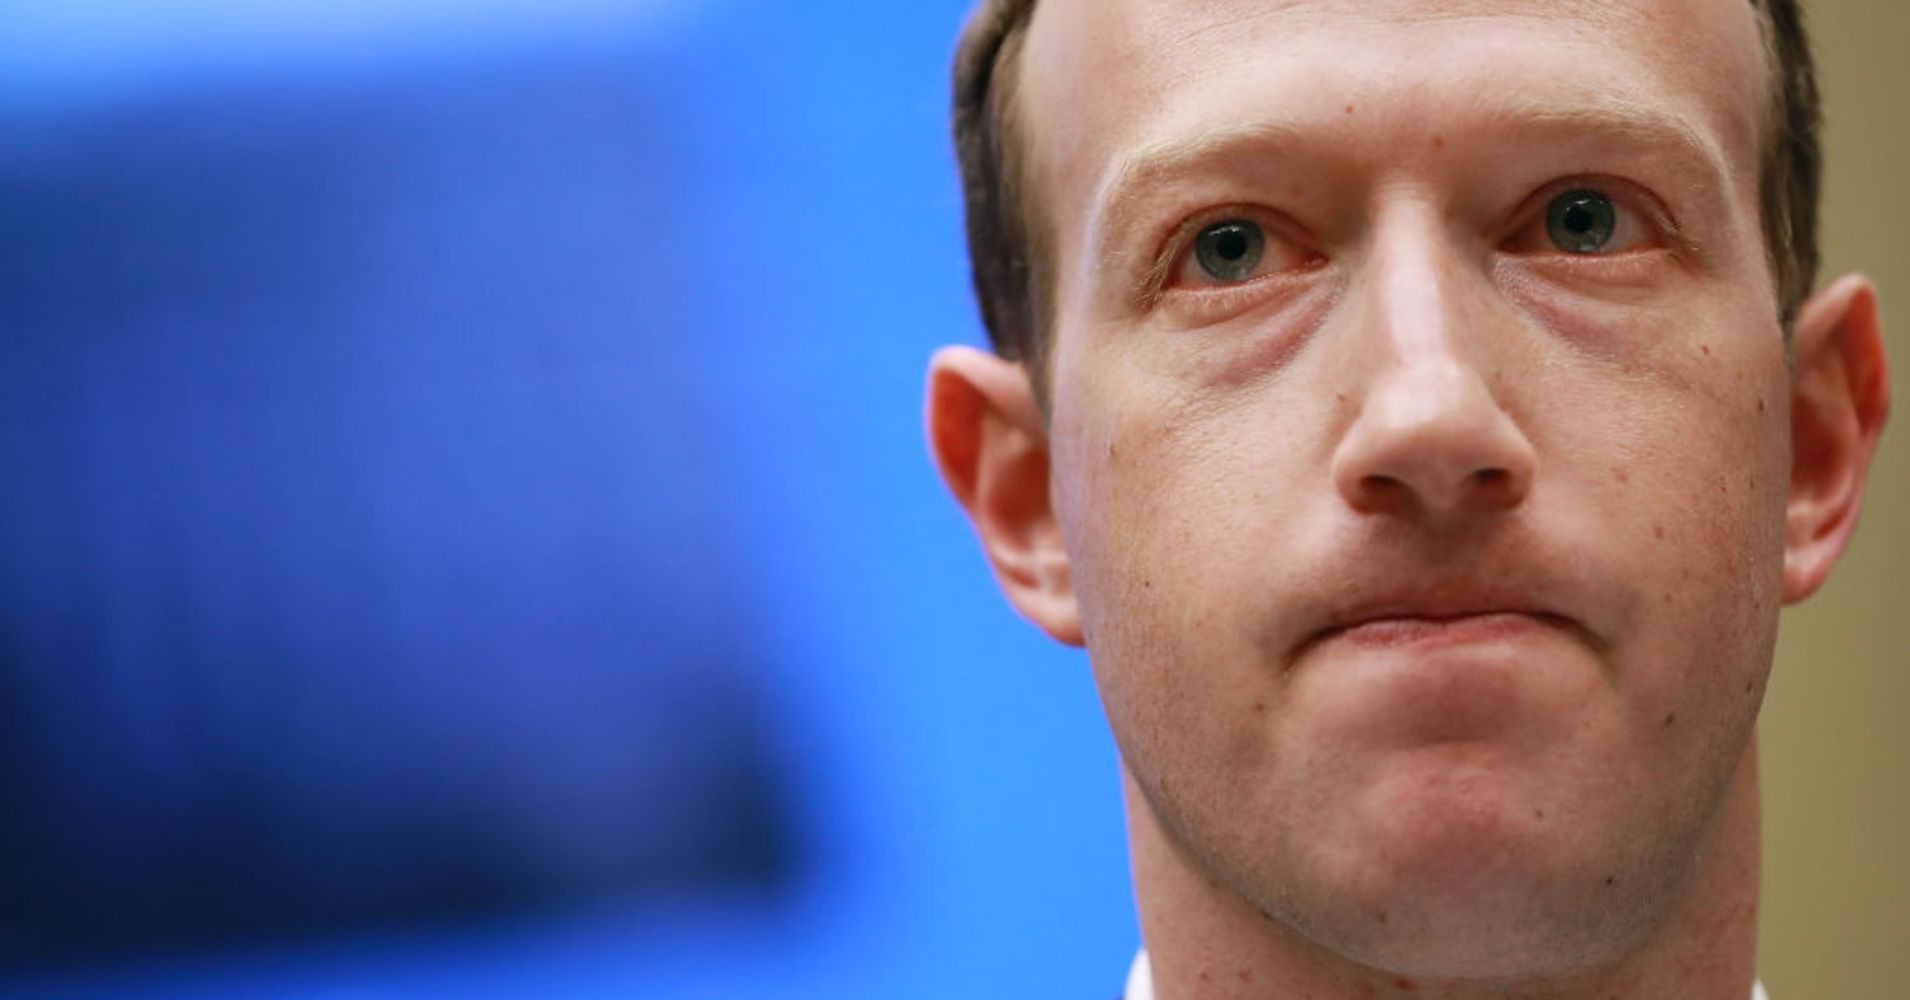 A fresh glimpse inside Facebook HQ during its scandal-ridden year